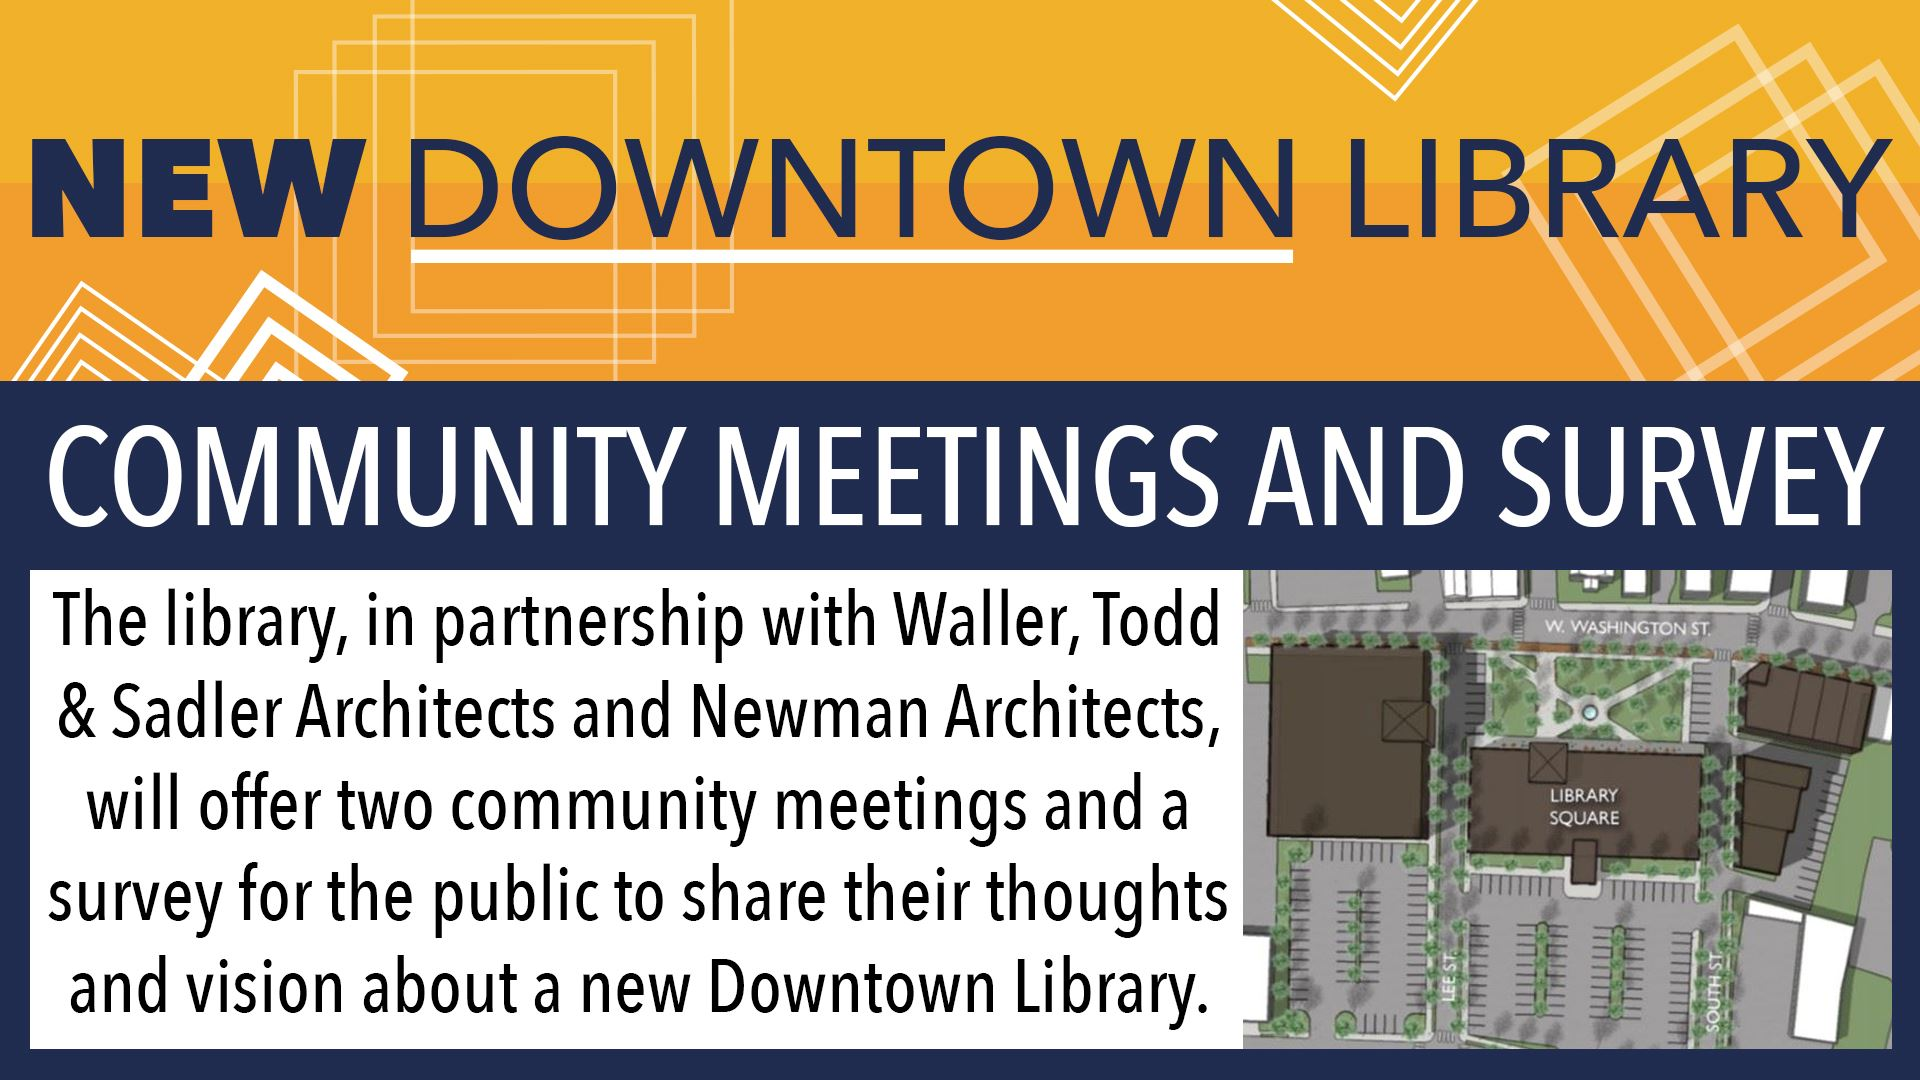 New Downtown Library Image